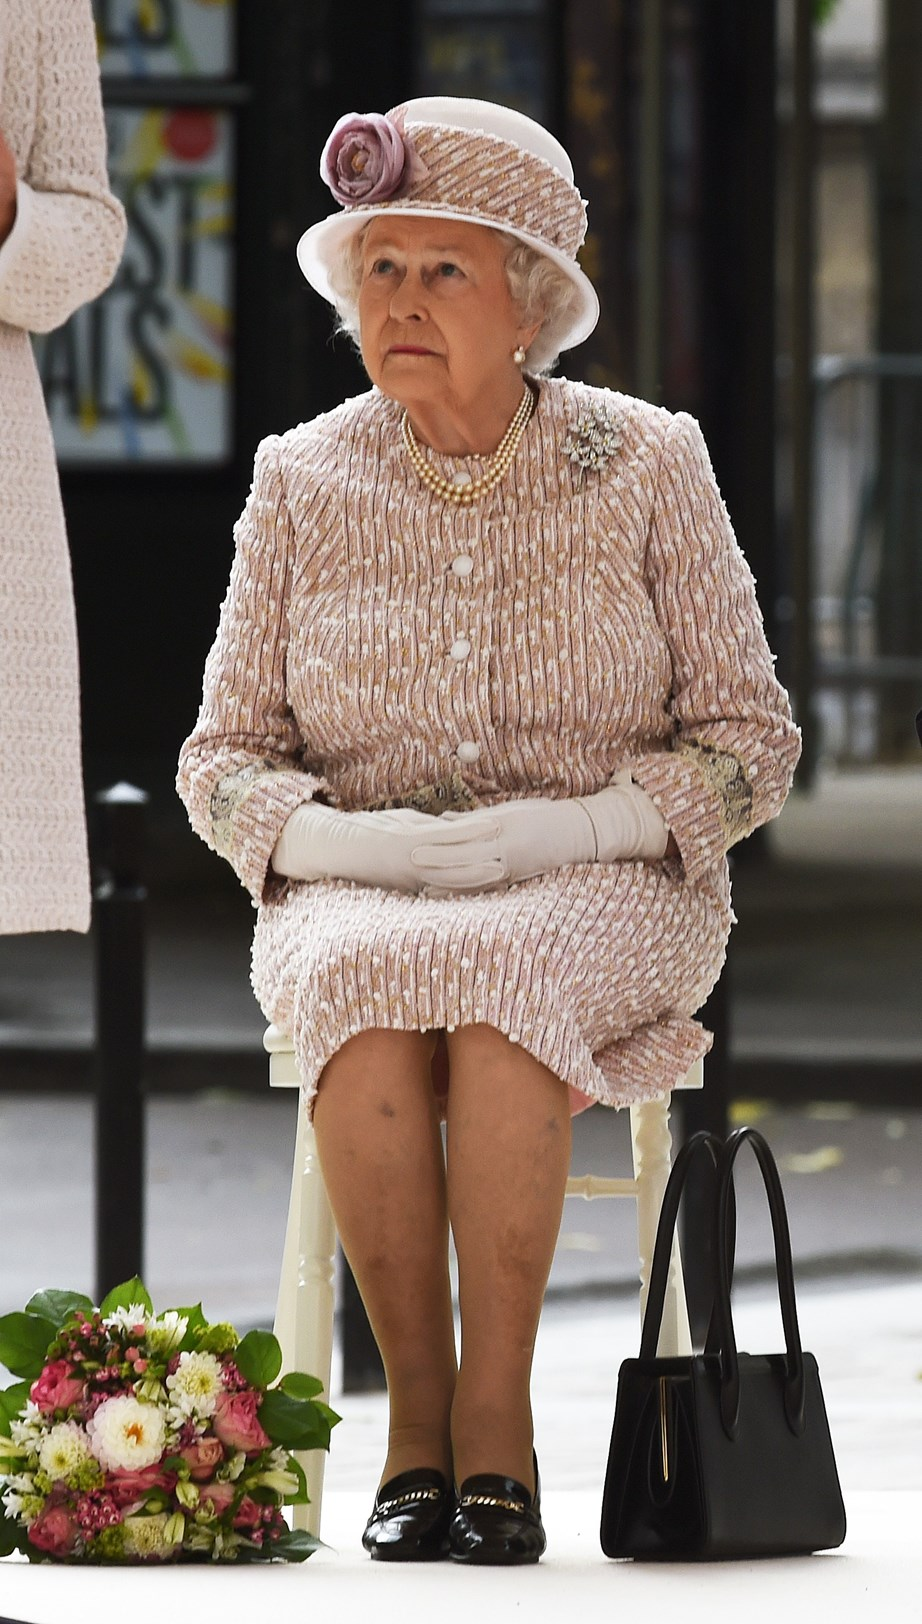 The Queen is thankfully safe, after an intruder broke into the grounds of Buckingham Palace in the early hours of Wednesday morning. *(Image: Getty)*